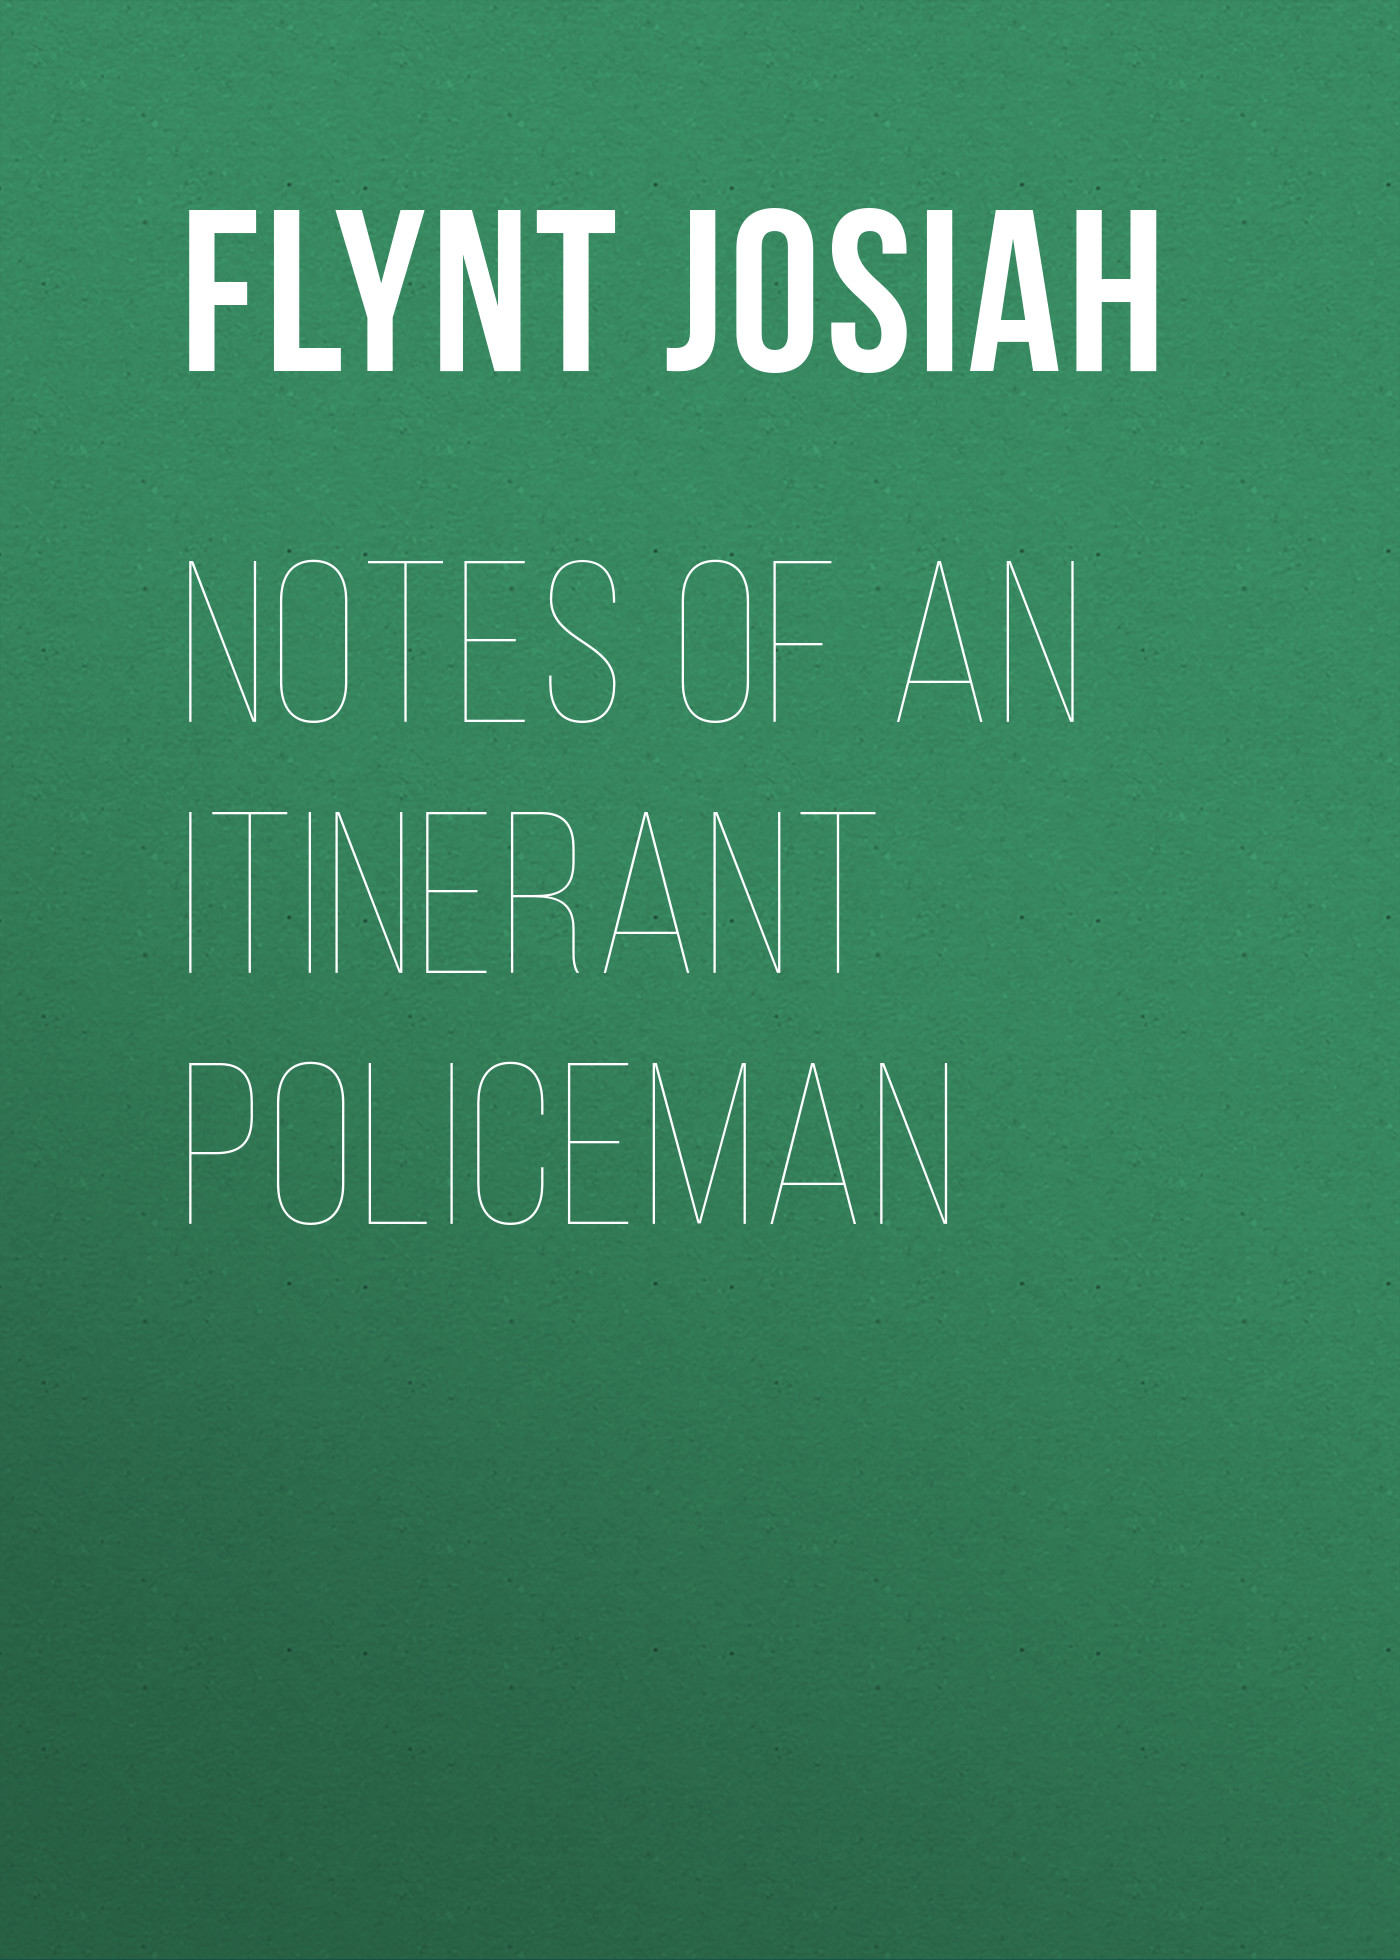 Flynt Josiah Notes of an Itinerant Policeman